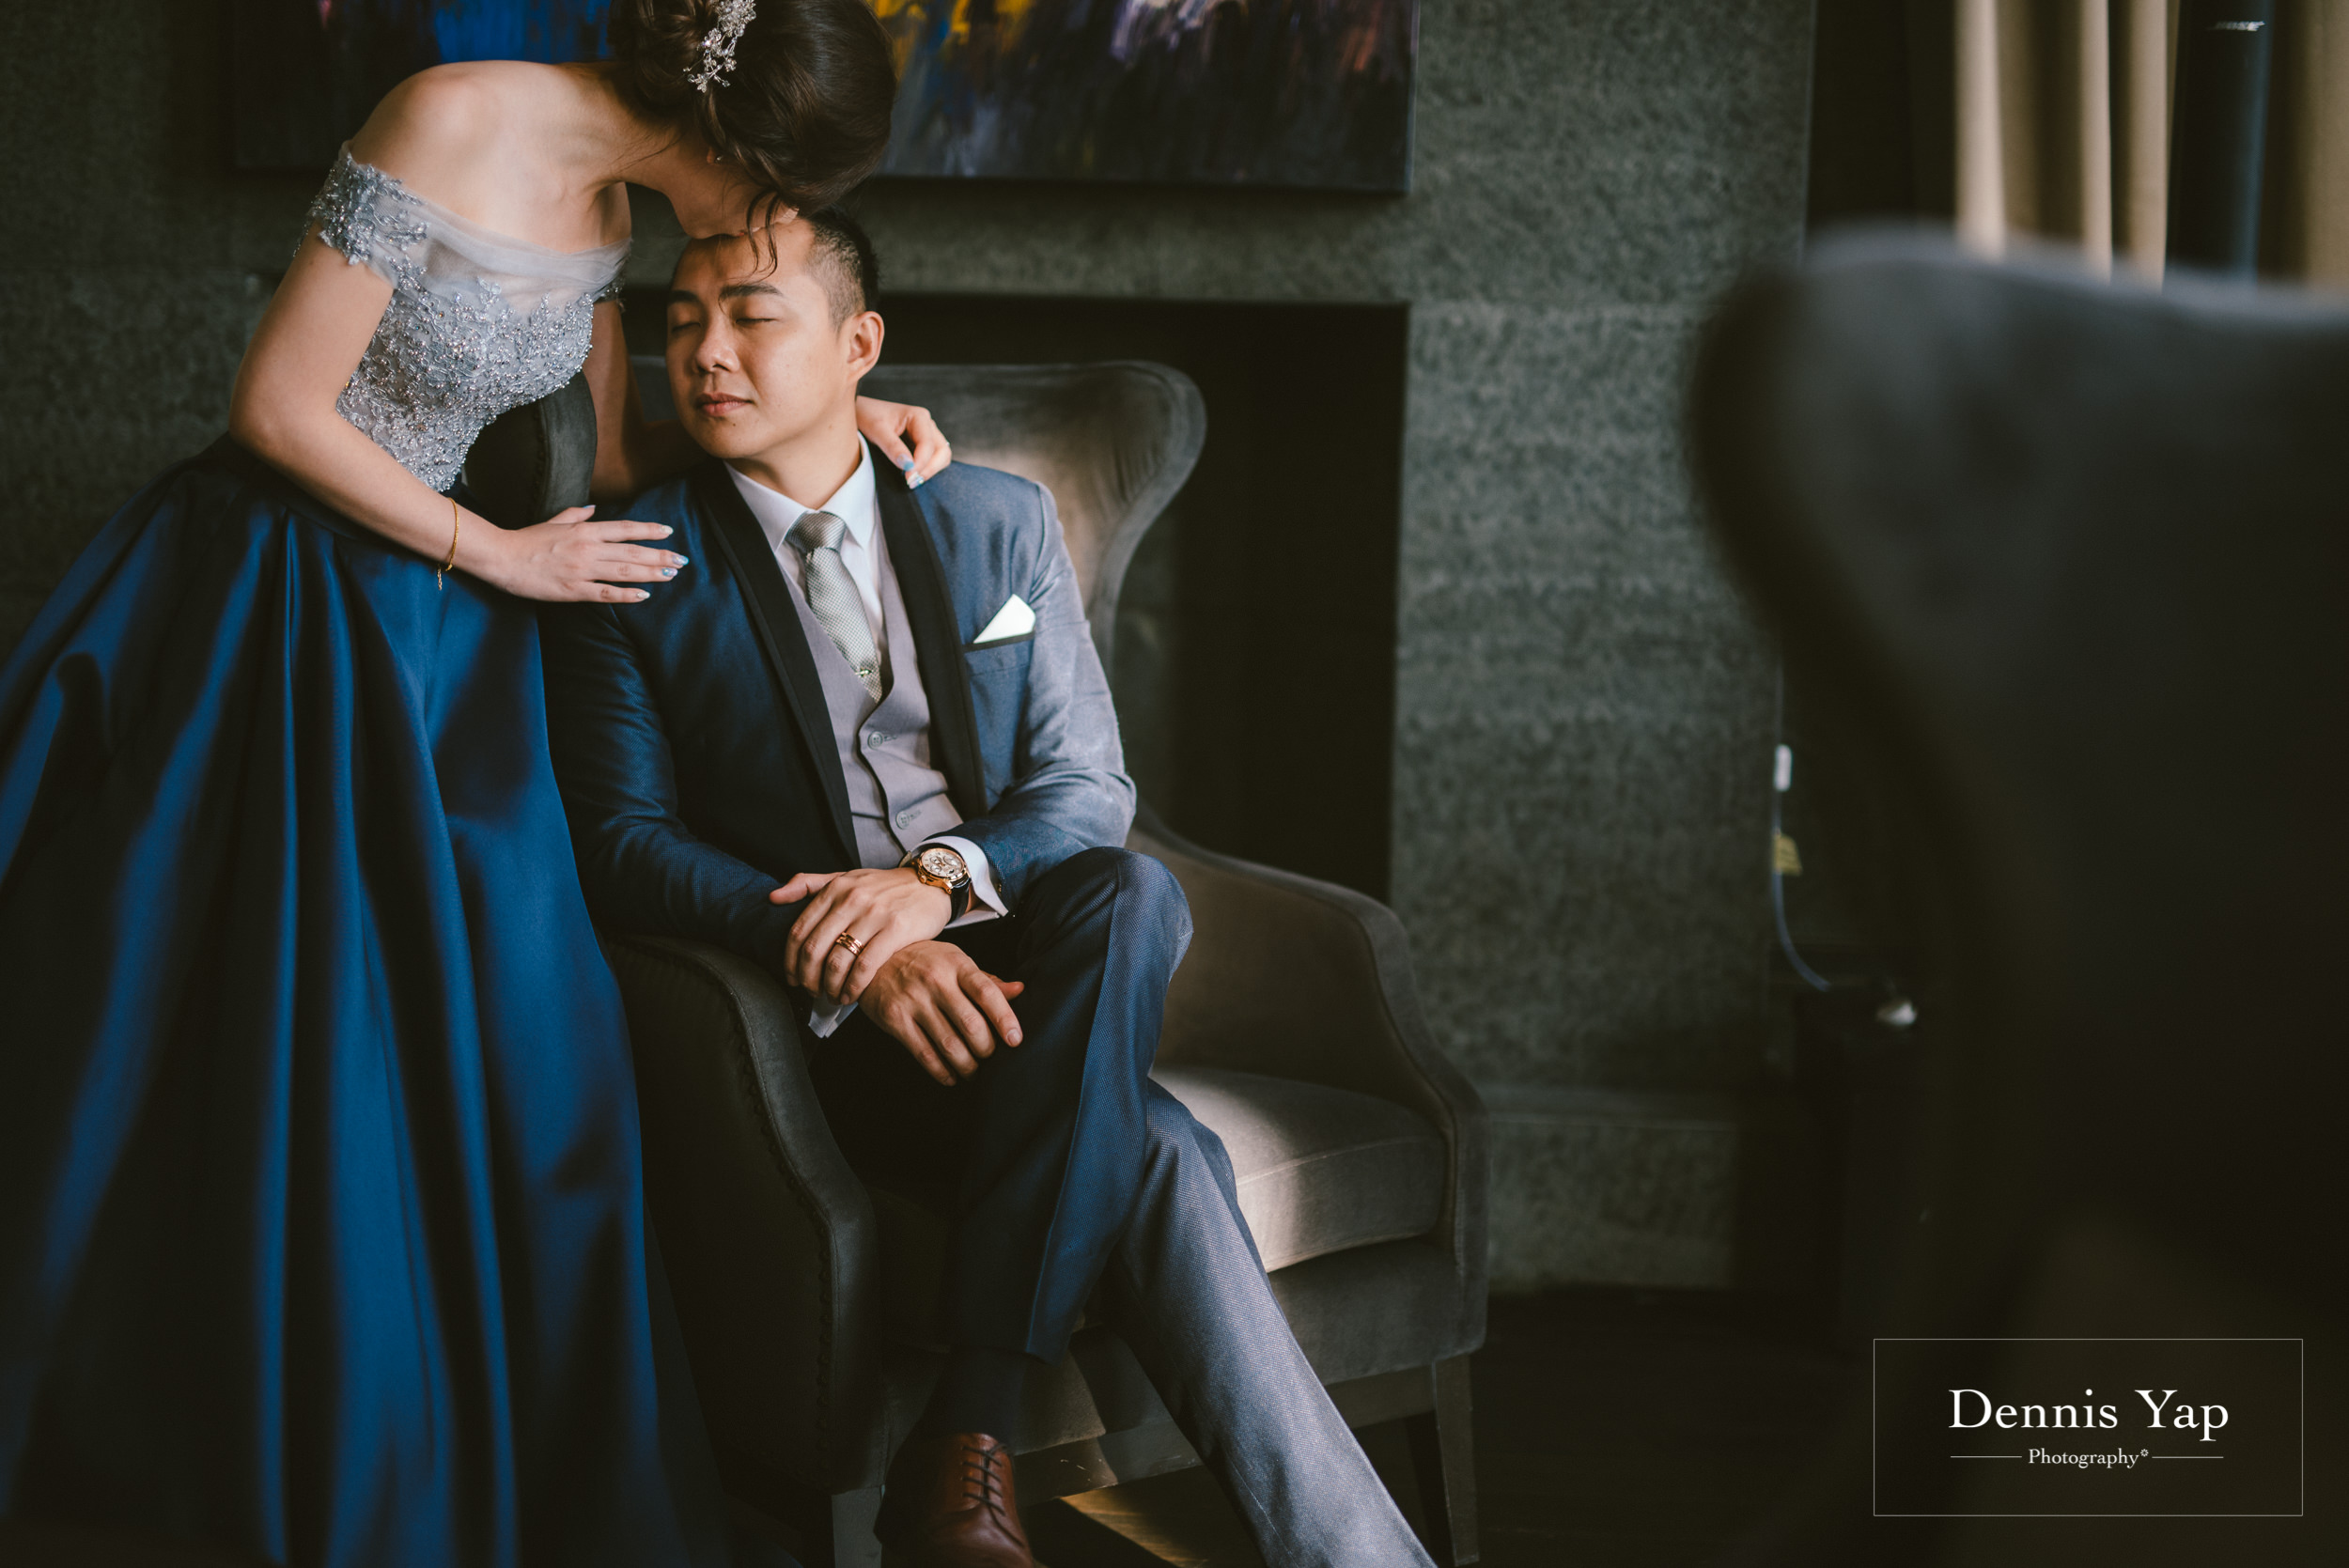 cross grace pre wedding st regis langkawi luxury style beloved dennis yap photography malaysia top wedding photographer dennis yap-32.jpg